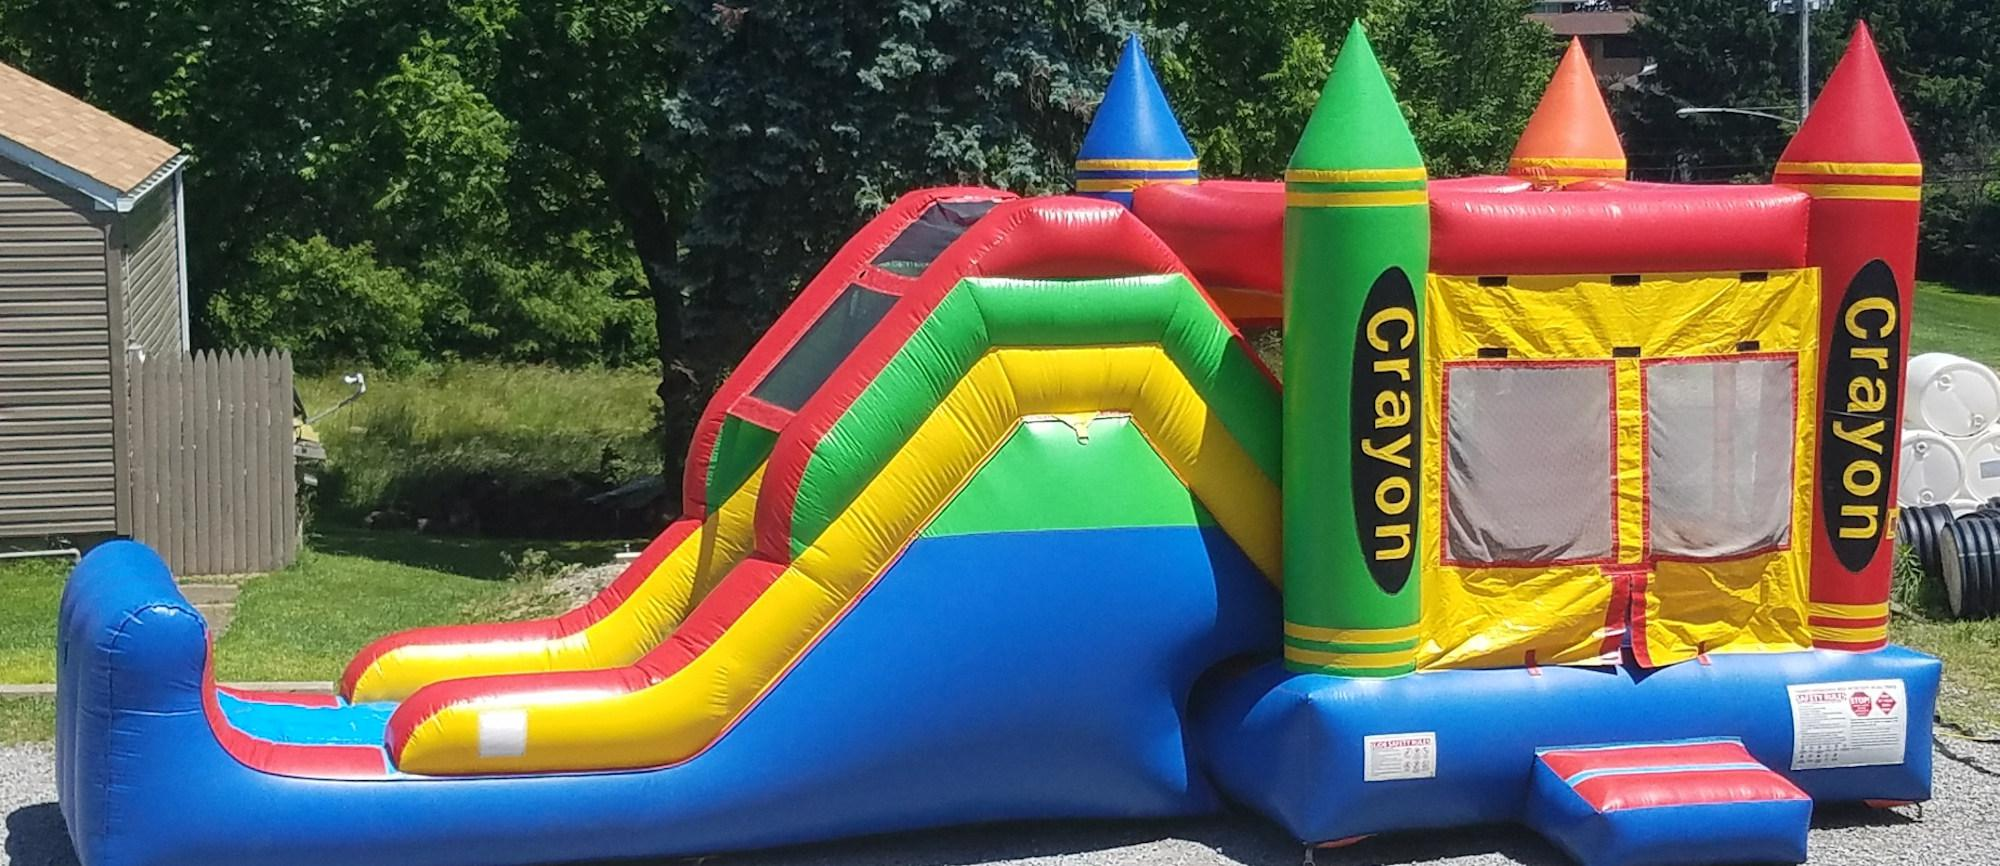 T&P Party Rentals, INC. Bounce Houses